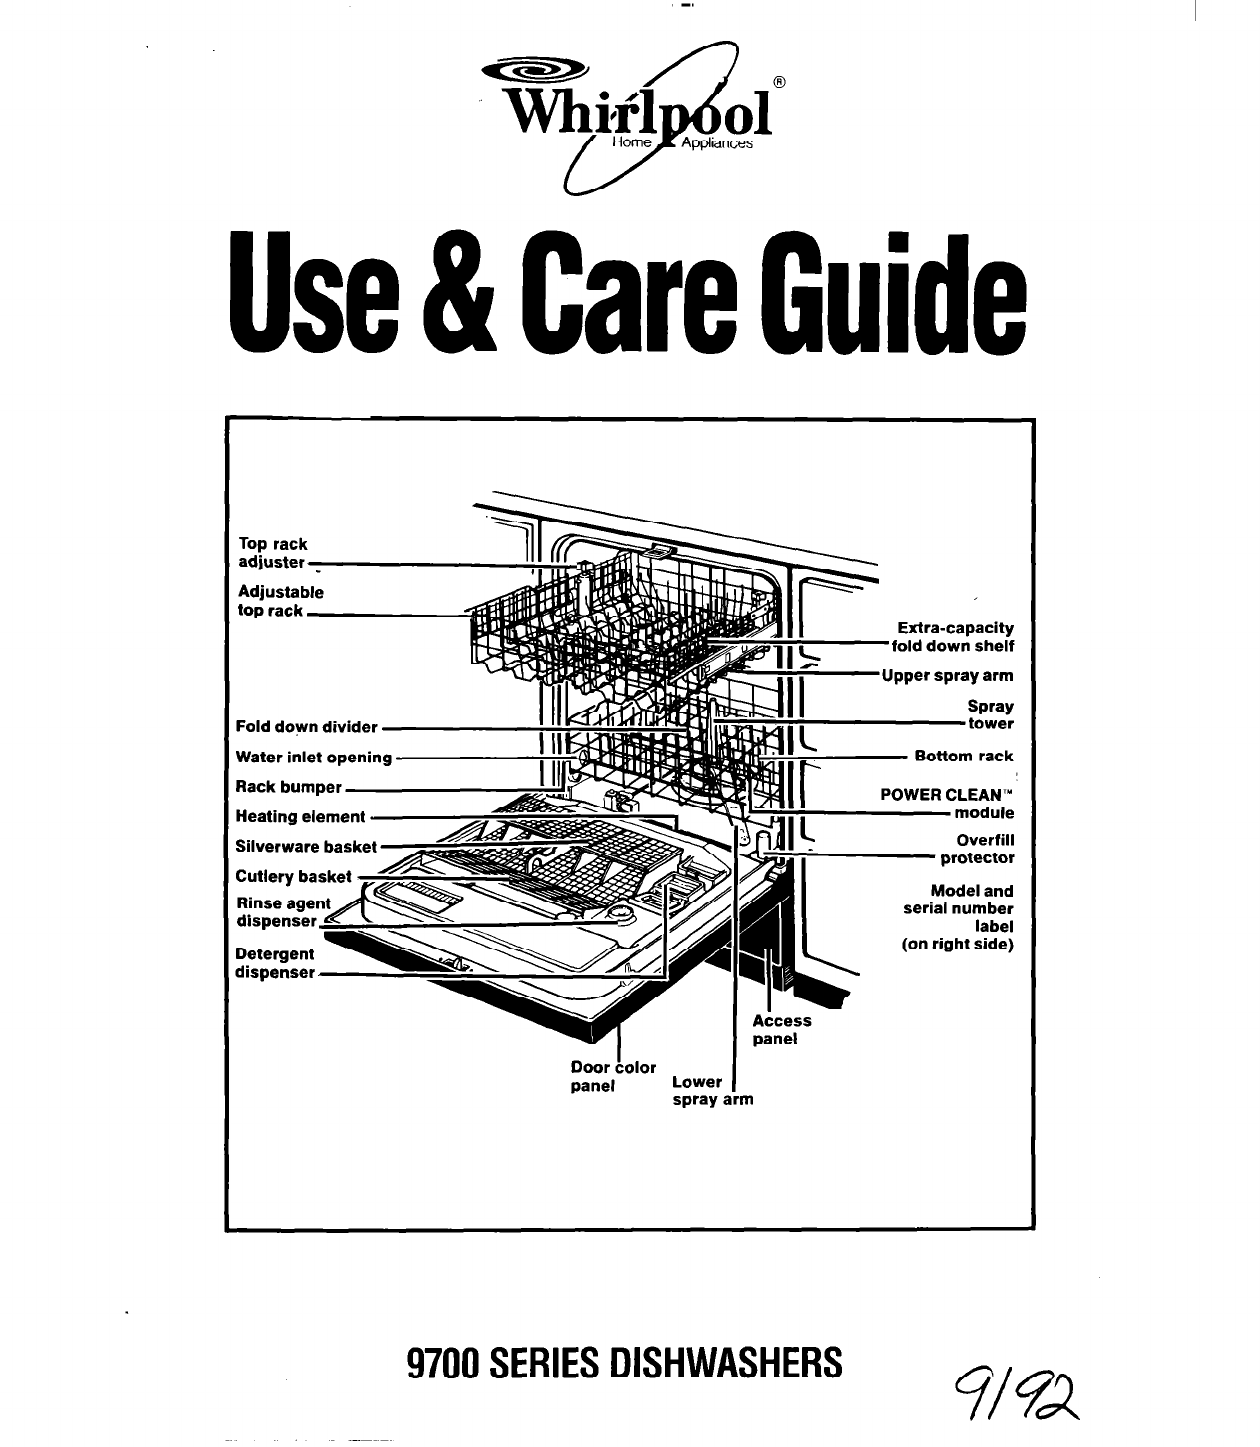 whirlpool dishwasher 9700 user guide manualsonline com rh kitchen manualsonline com Whirlpool Refrigerator Model Numbers whirlpool fridge freezer instruction manual